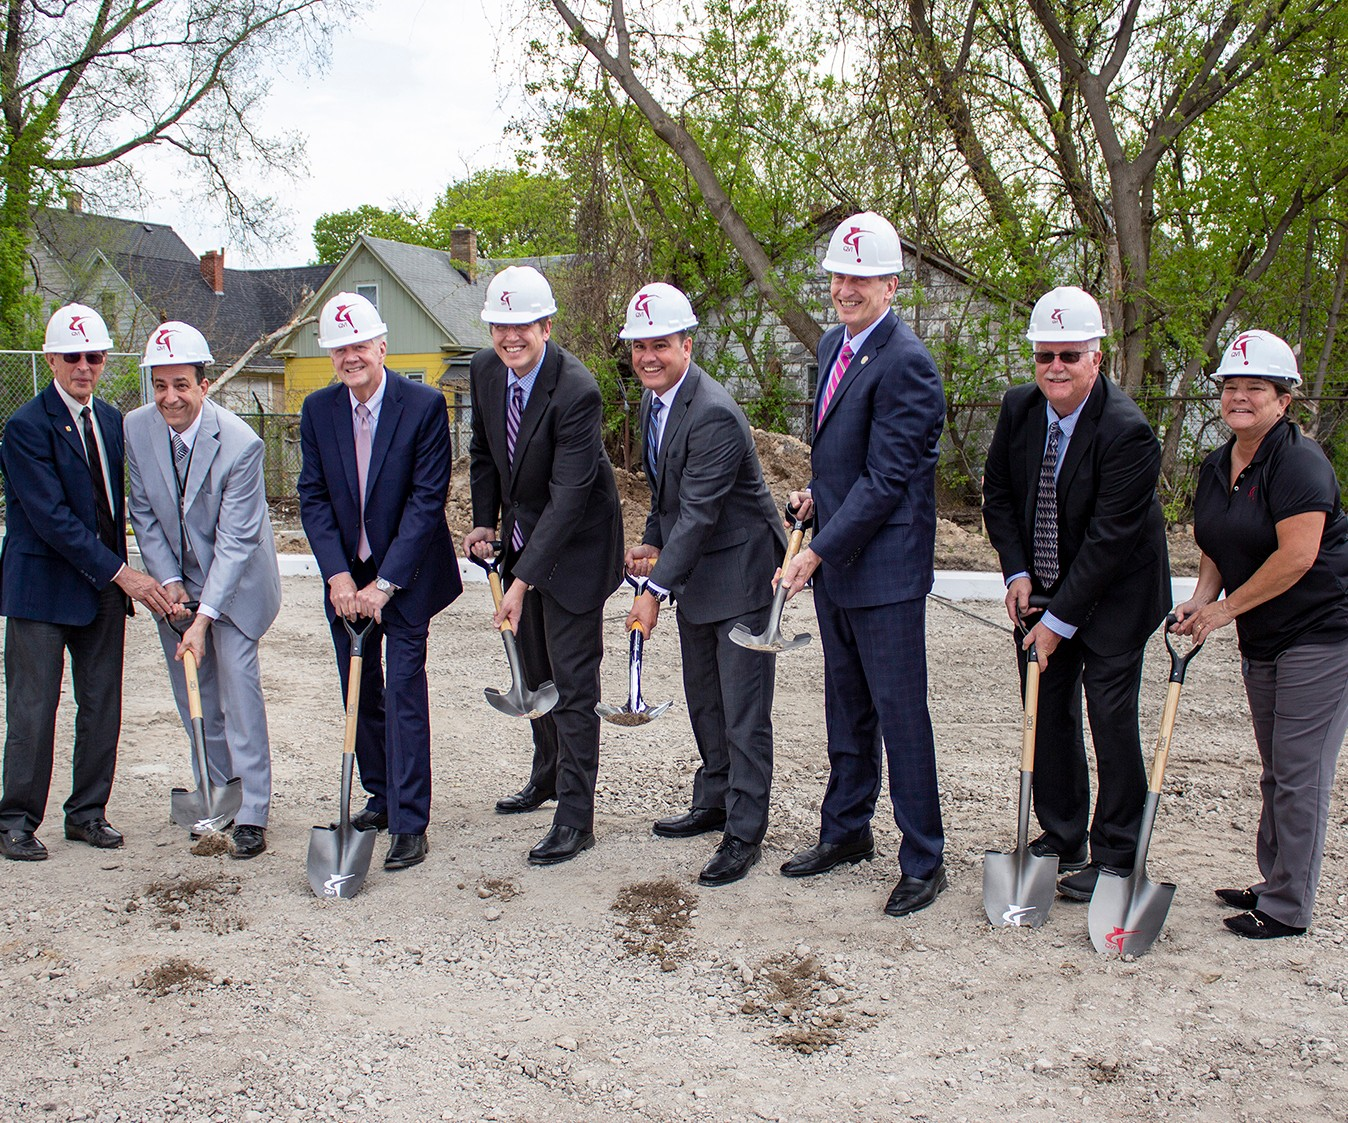 Quality Vision International Breaks Ground On New Facility